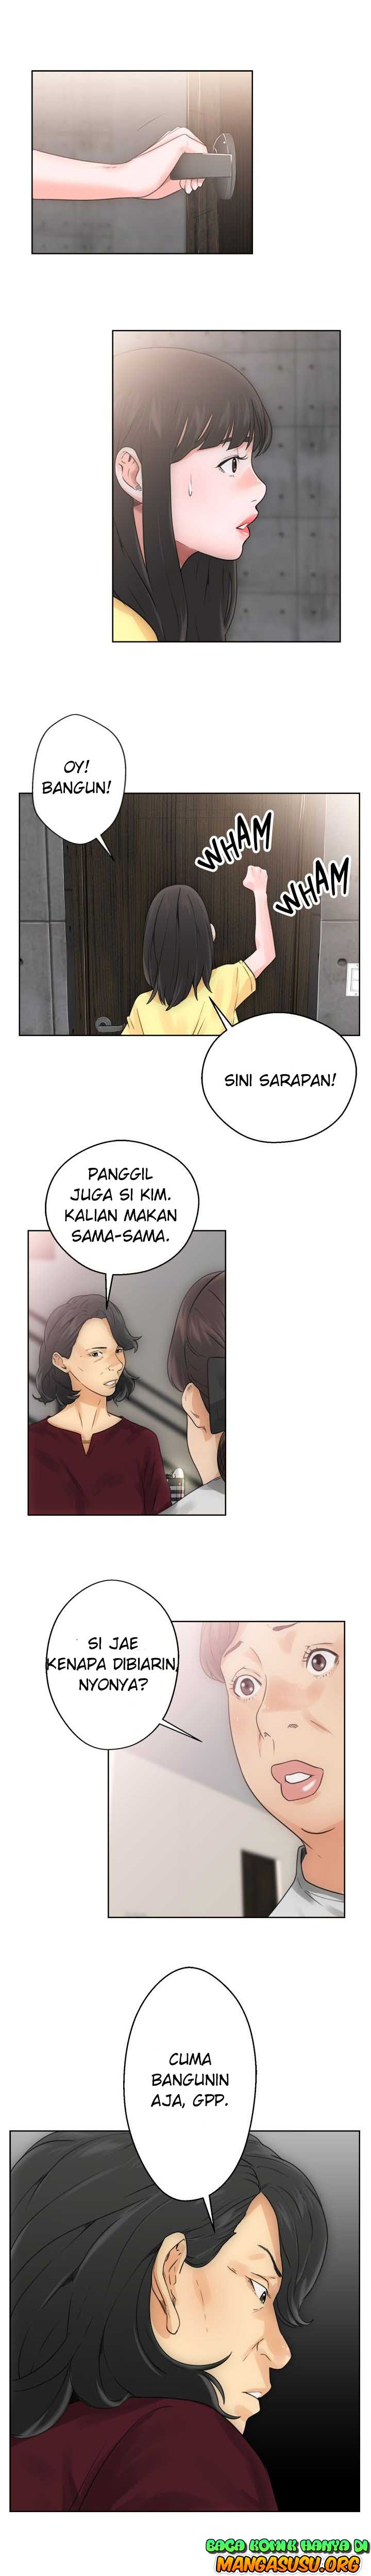 Lust Awakening Chapter 5 Bahasa Indonesia